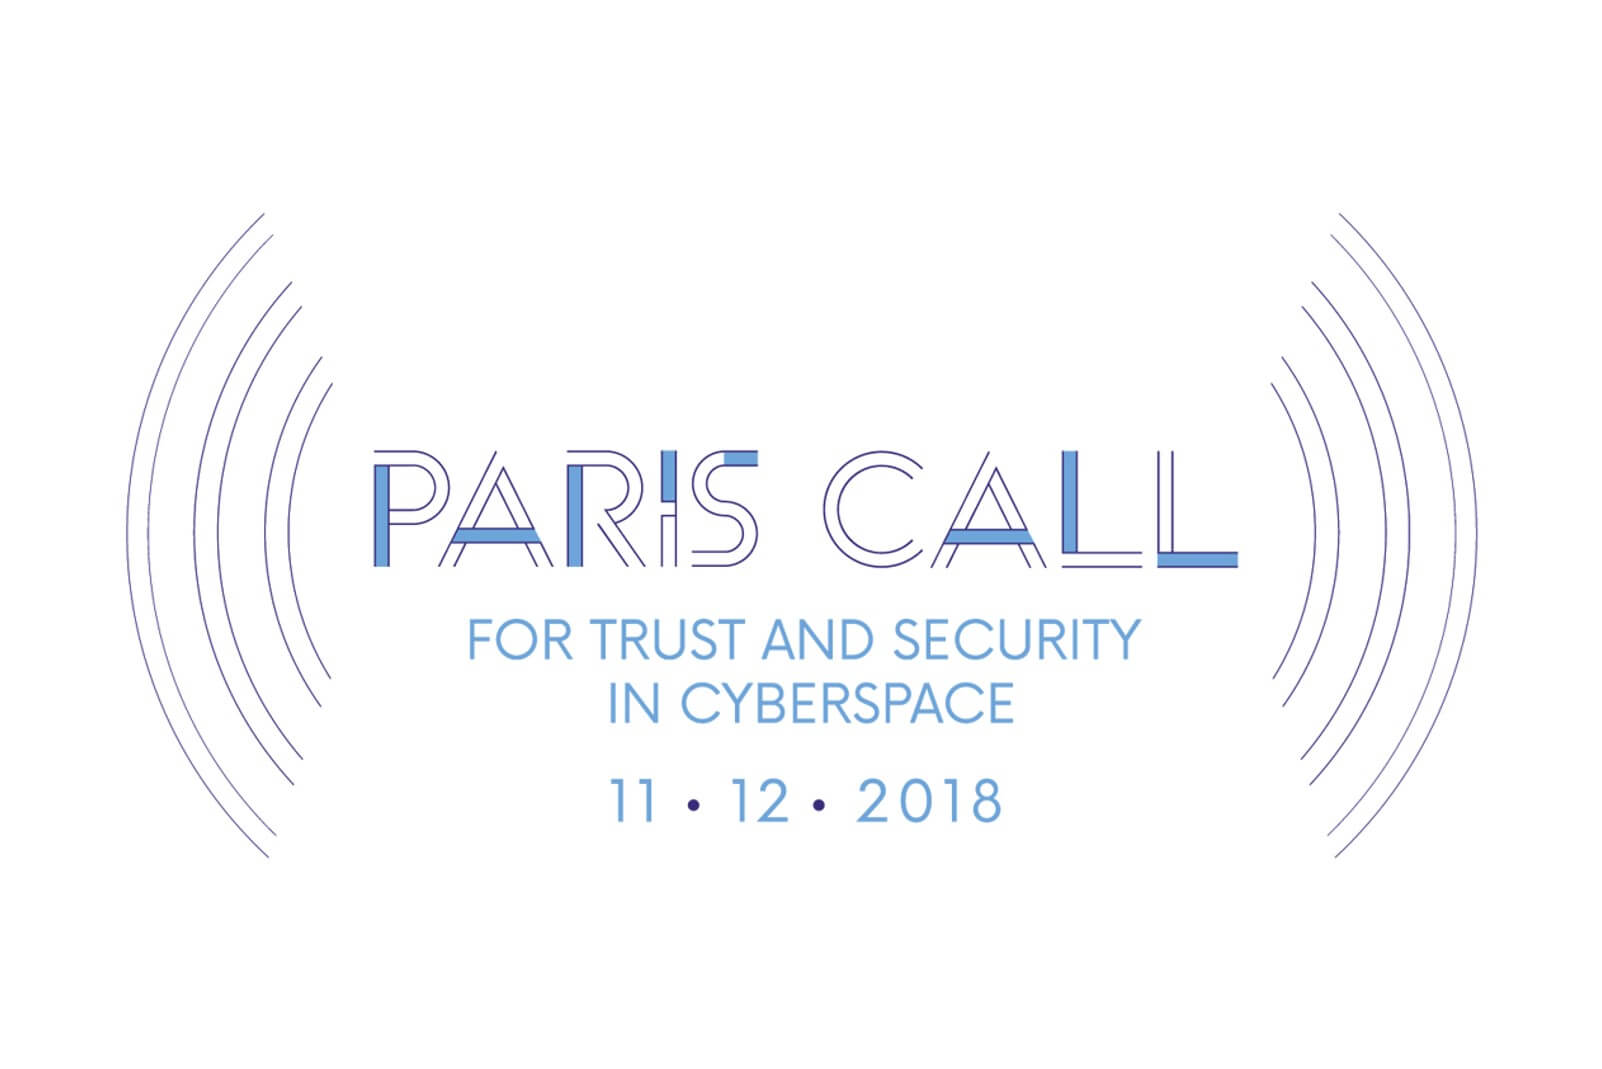 Paris-call-cyber-security-space-logsentinel